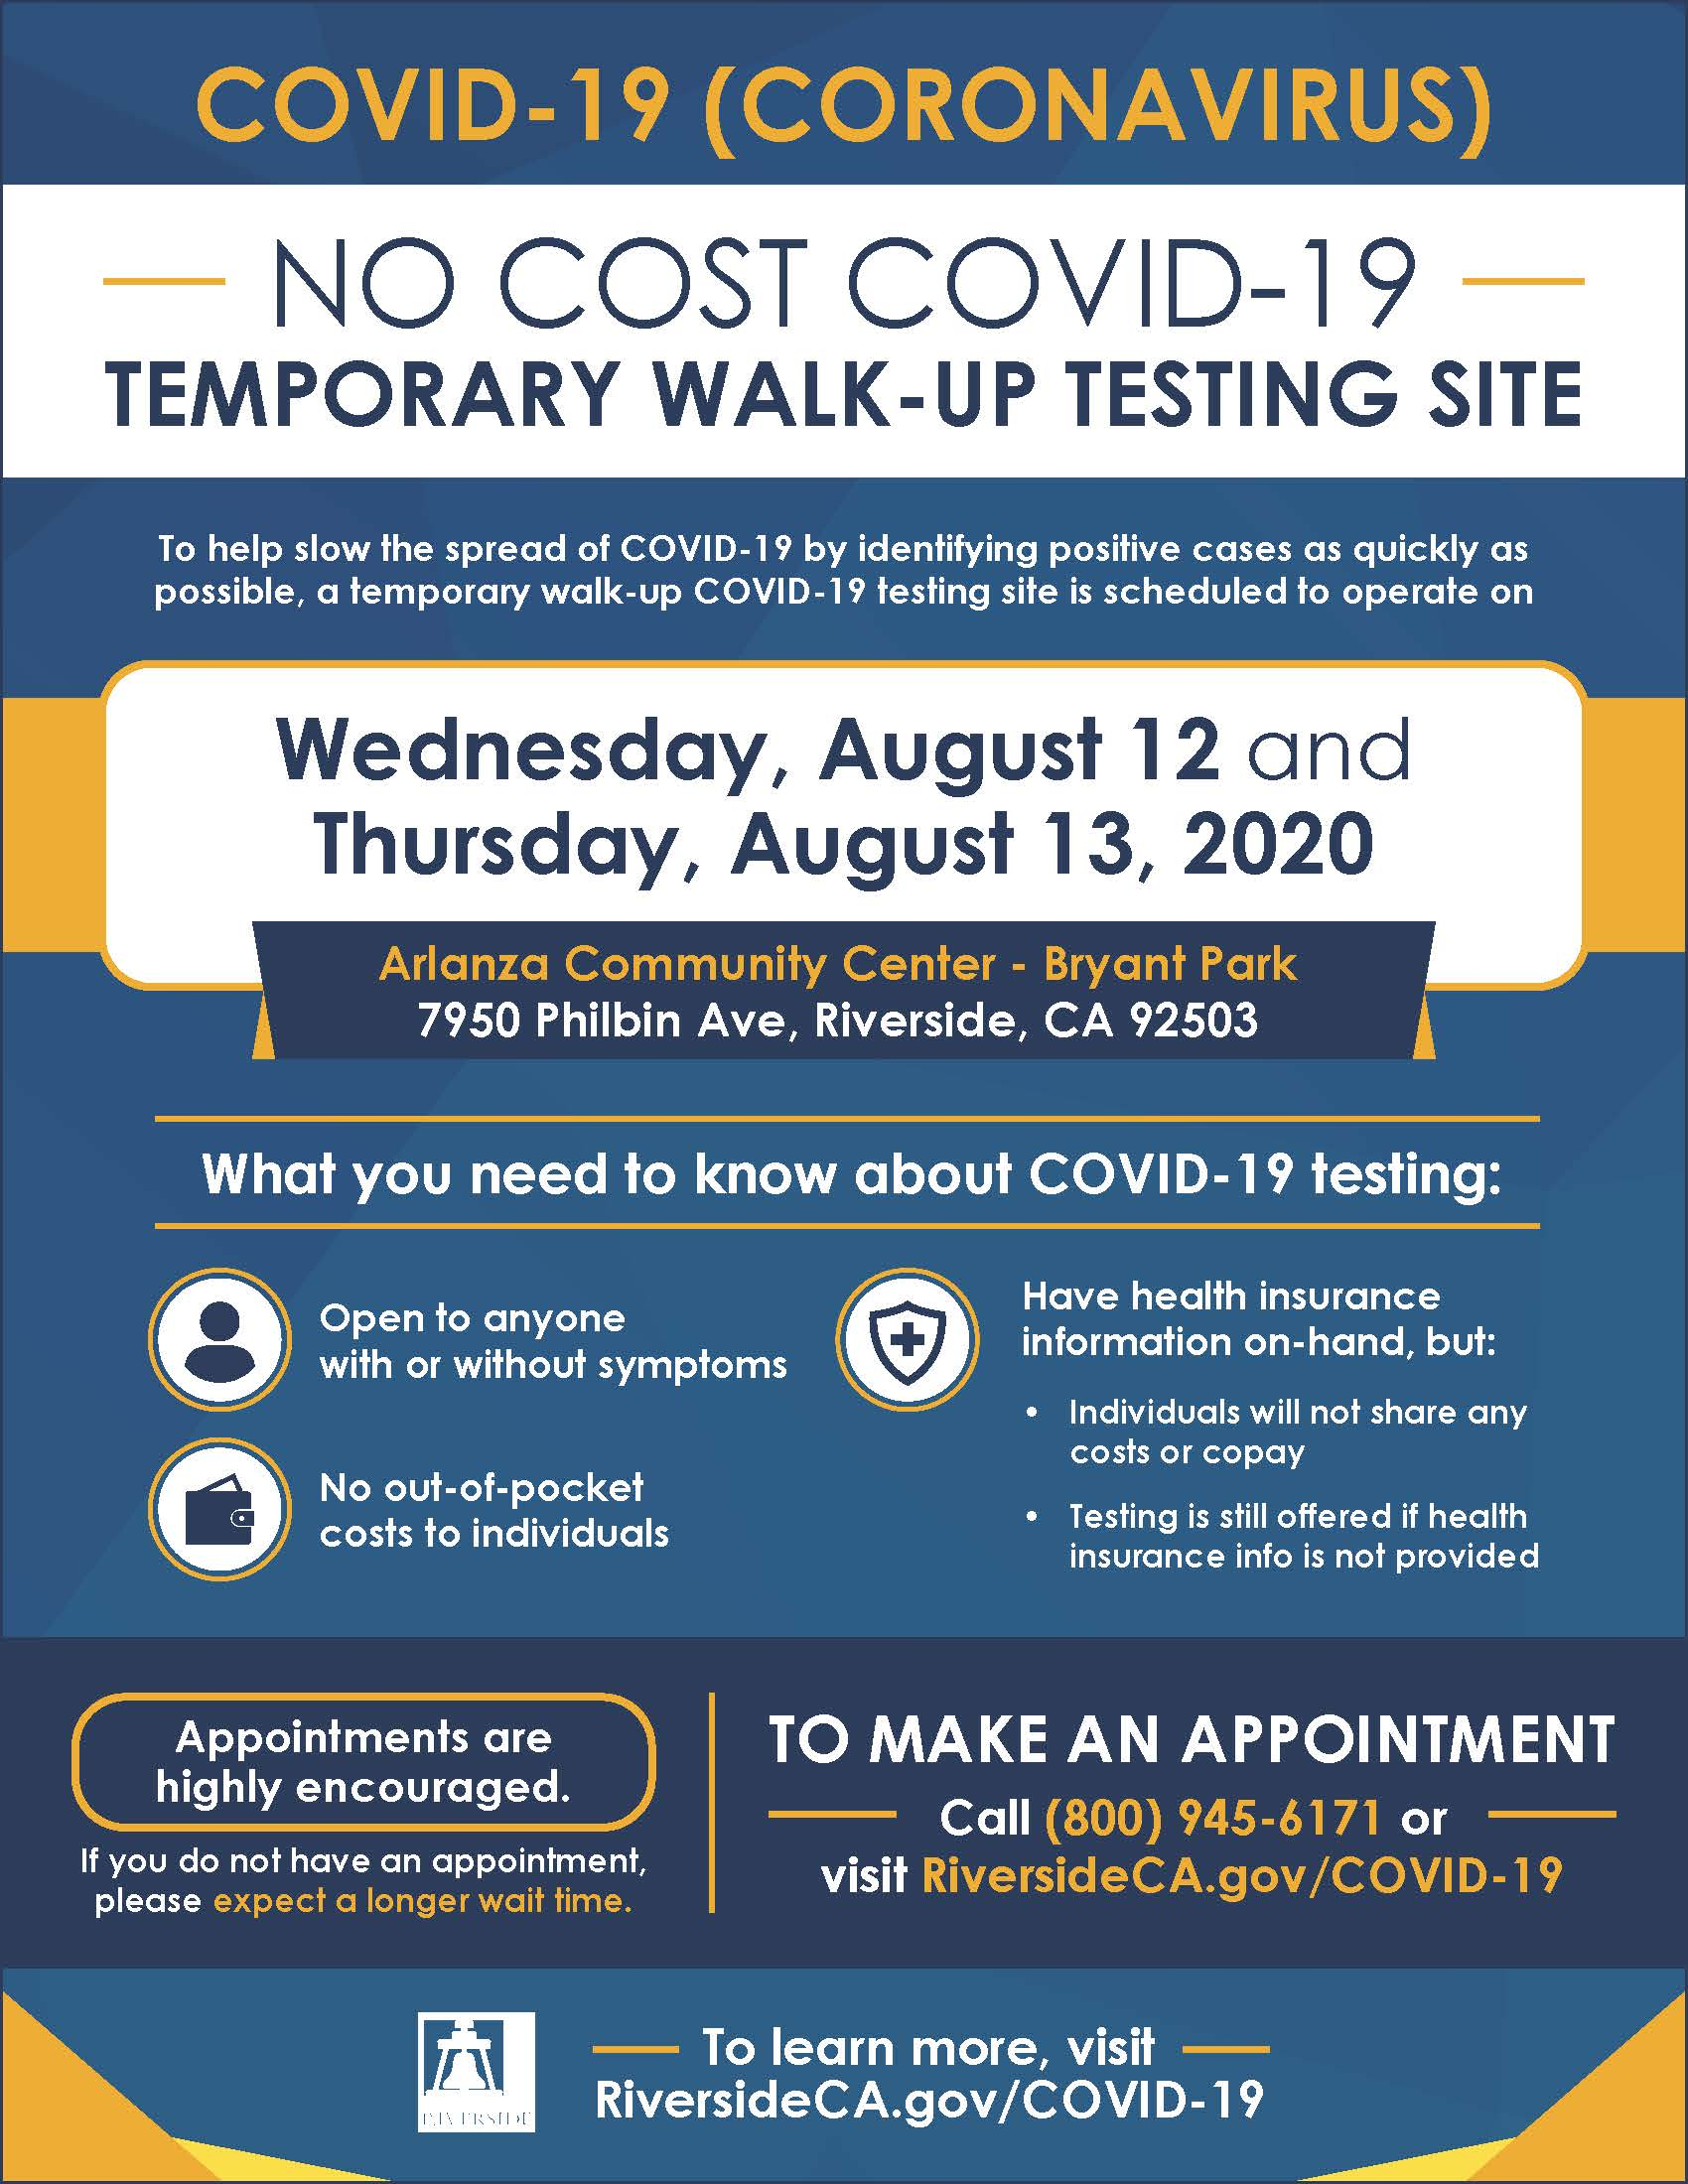 No Cost COVID-19 Testing Aug 12 and 13 at Arlanza Community Center